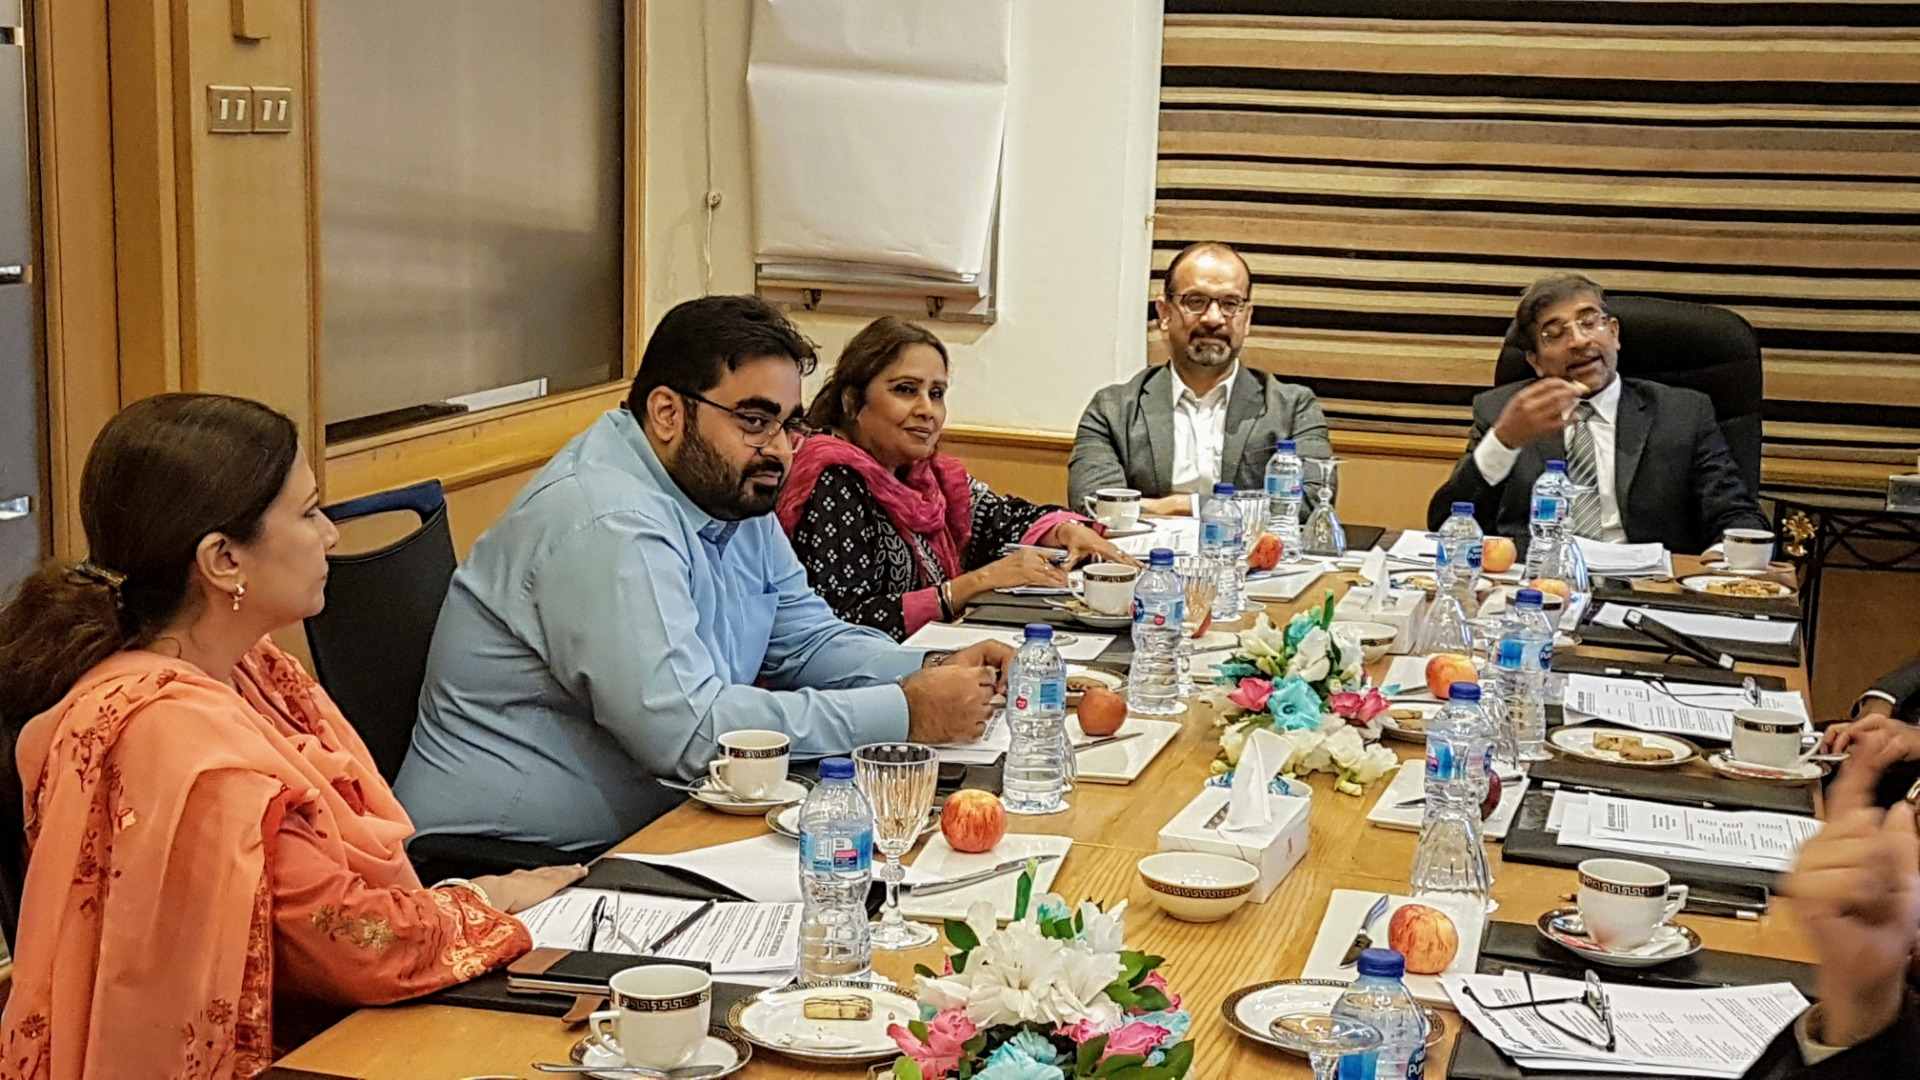 The 55th Annual General Meeting was held on 30-09-2019 at Karachi Marriott Hotel